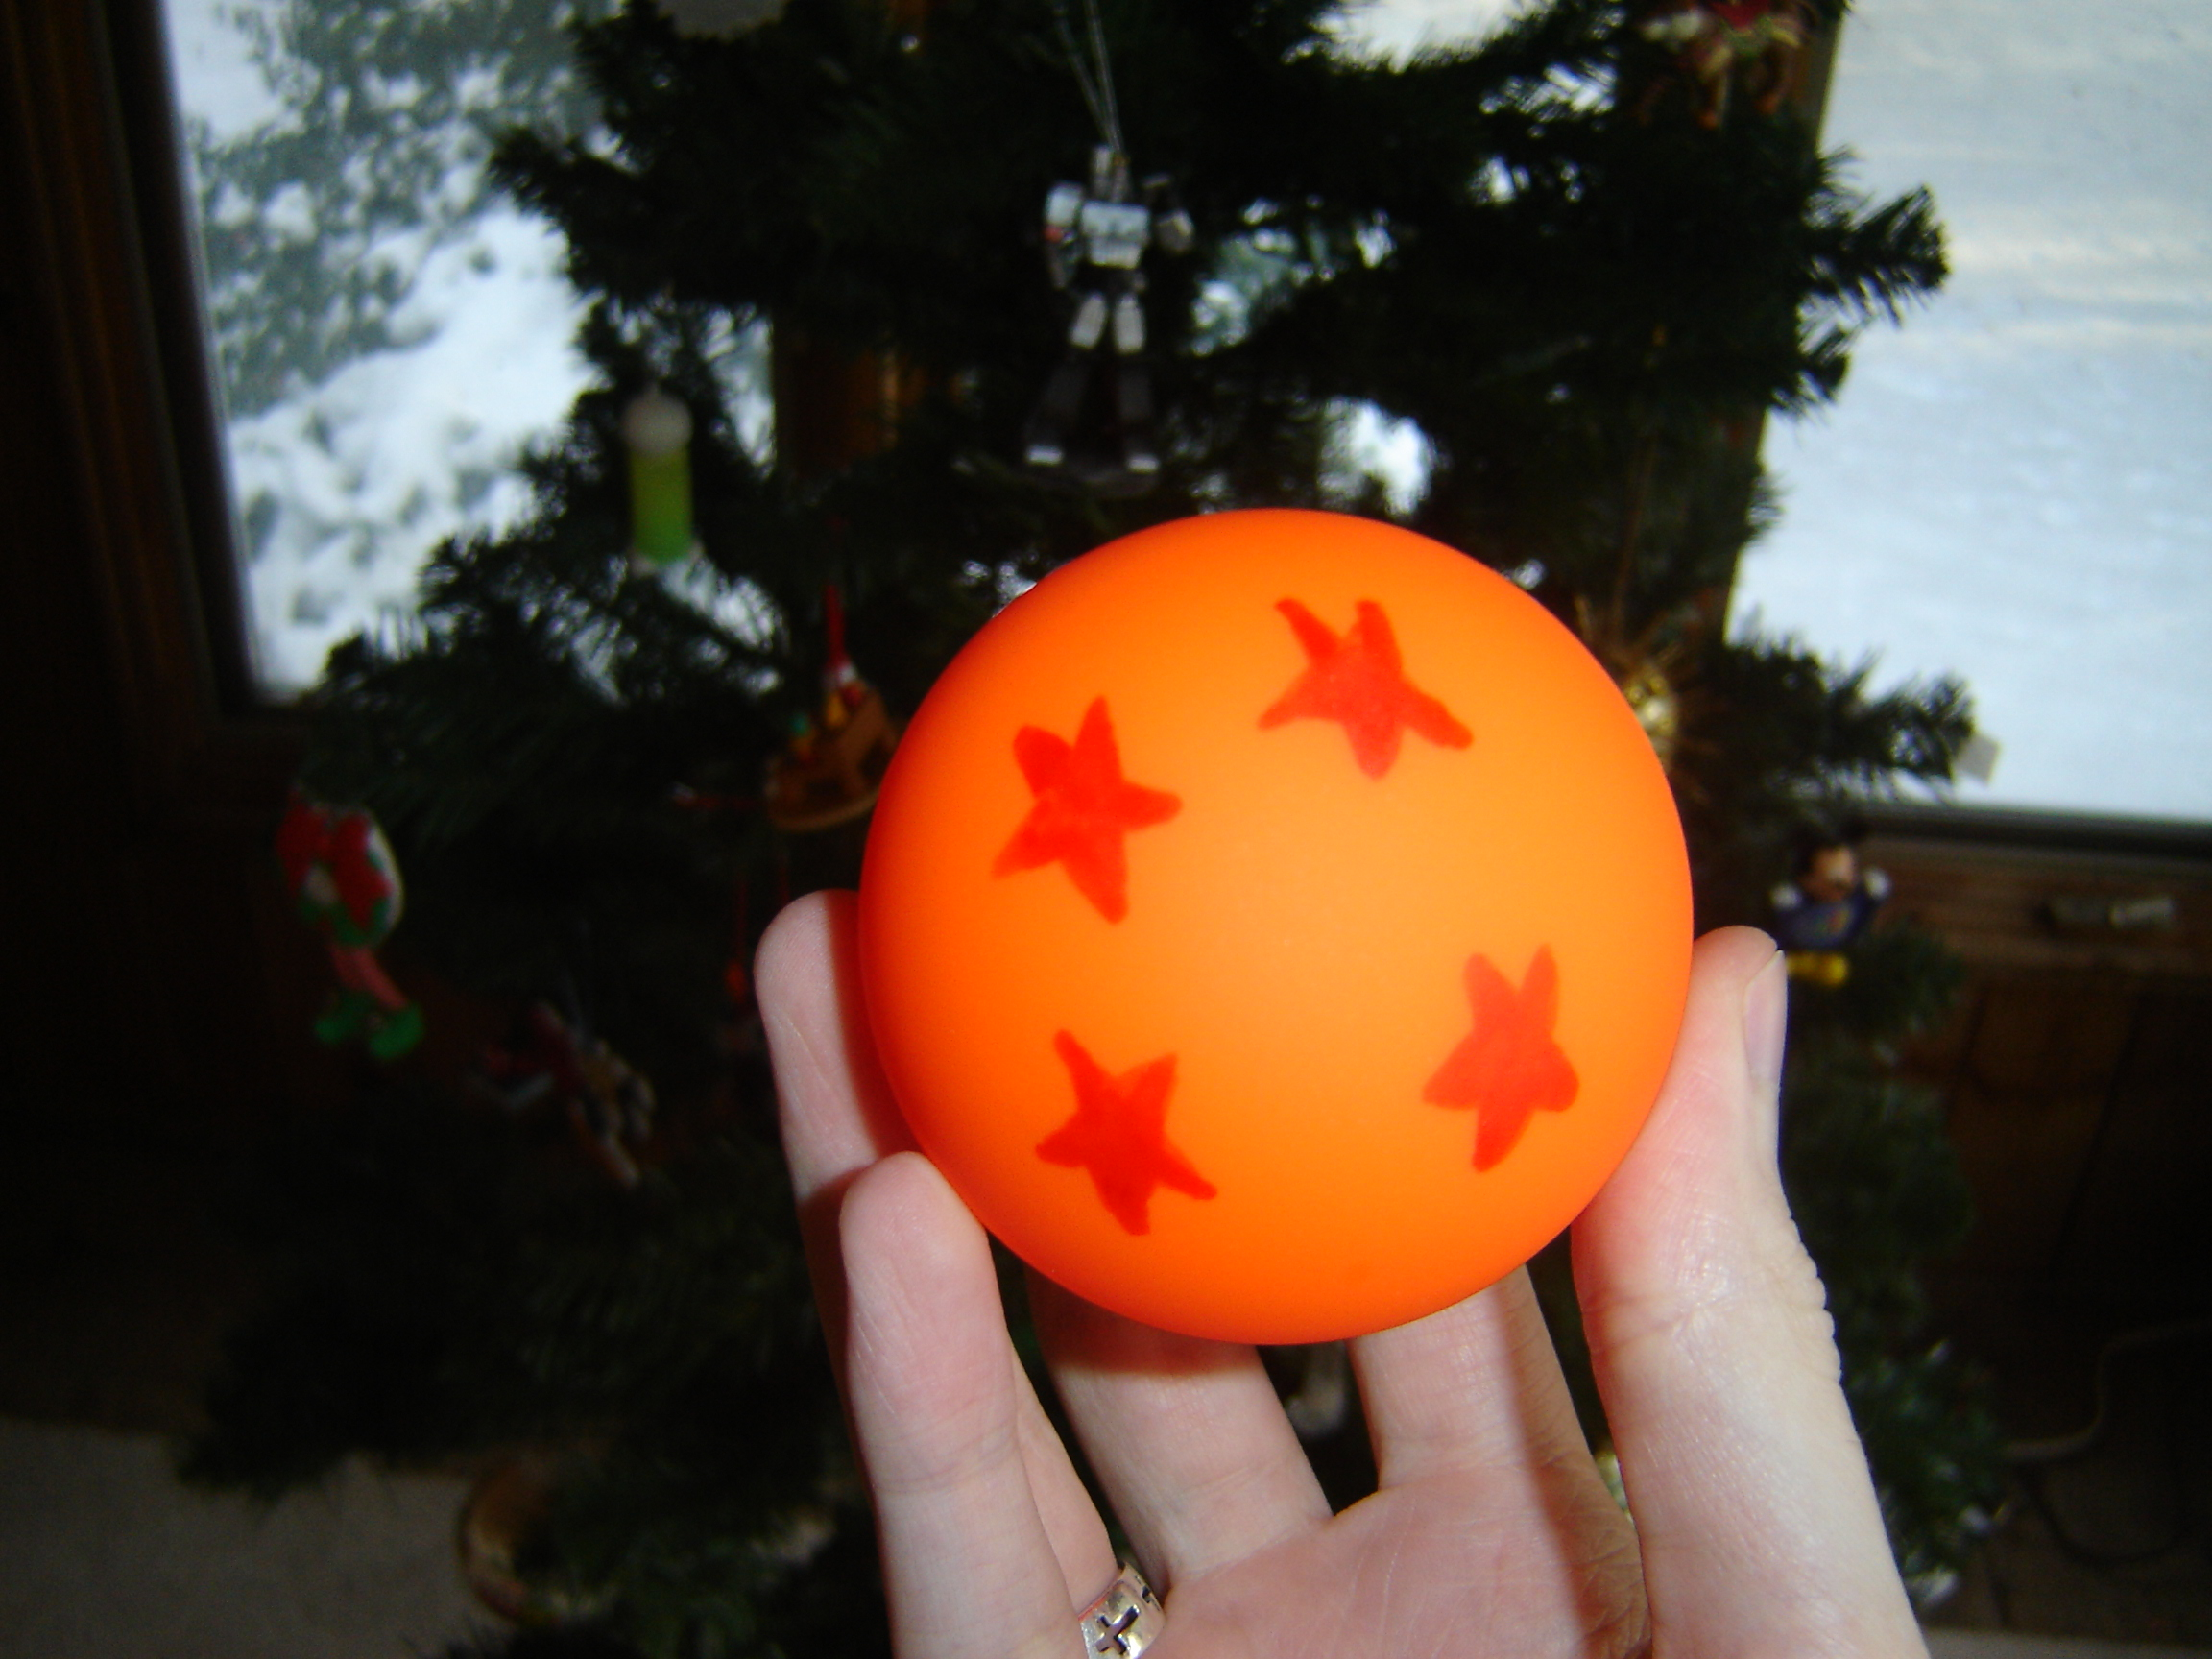 Ornament benjamin t collier 39 s blog for Decoration dragon ball